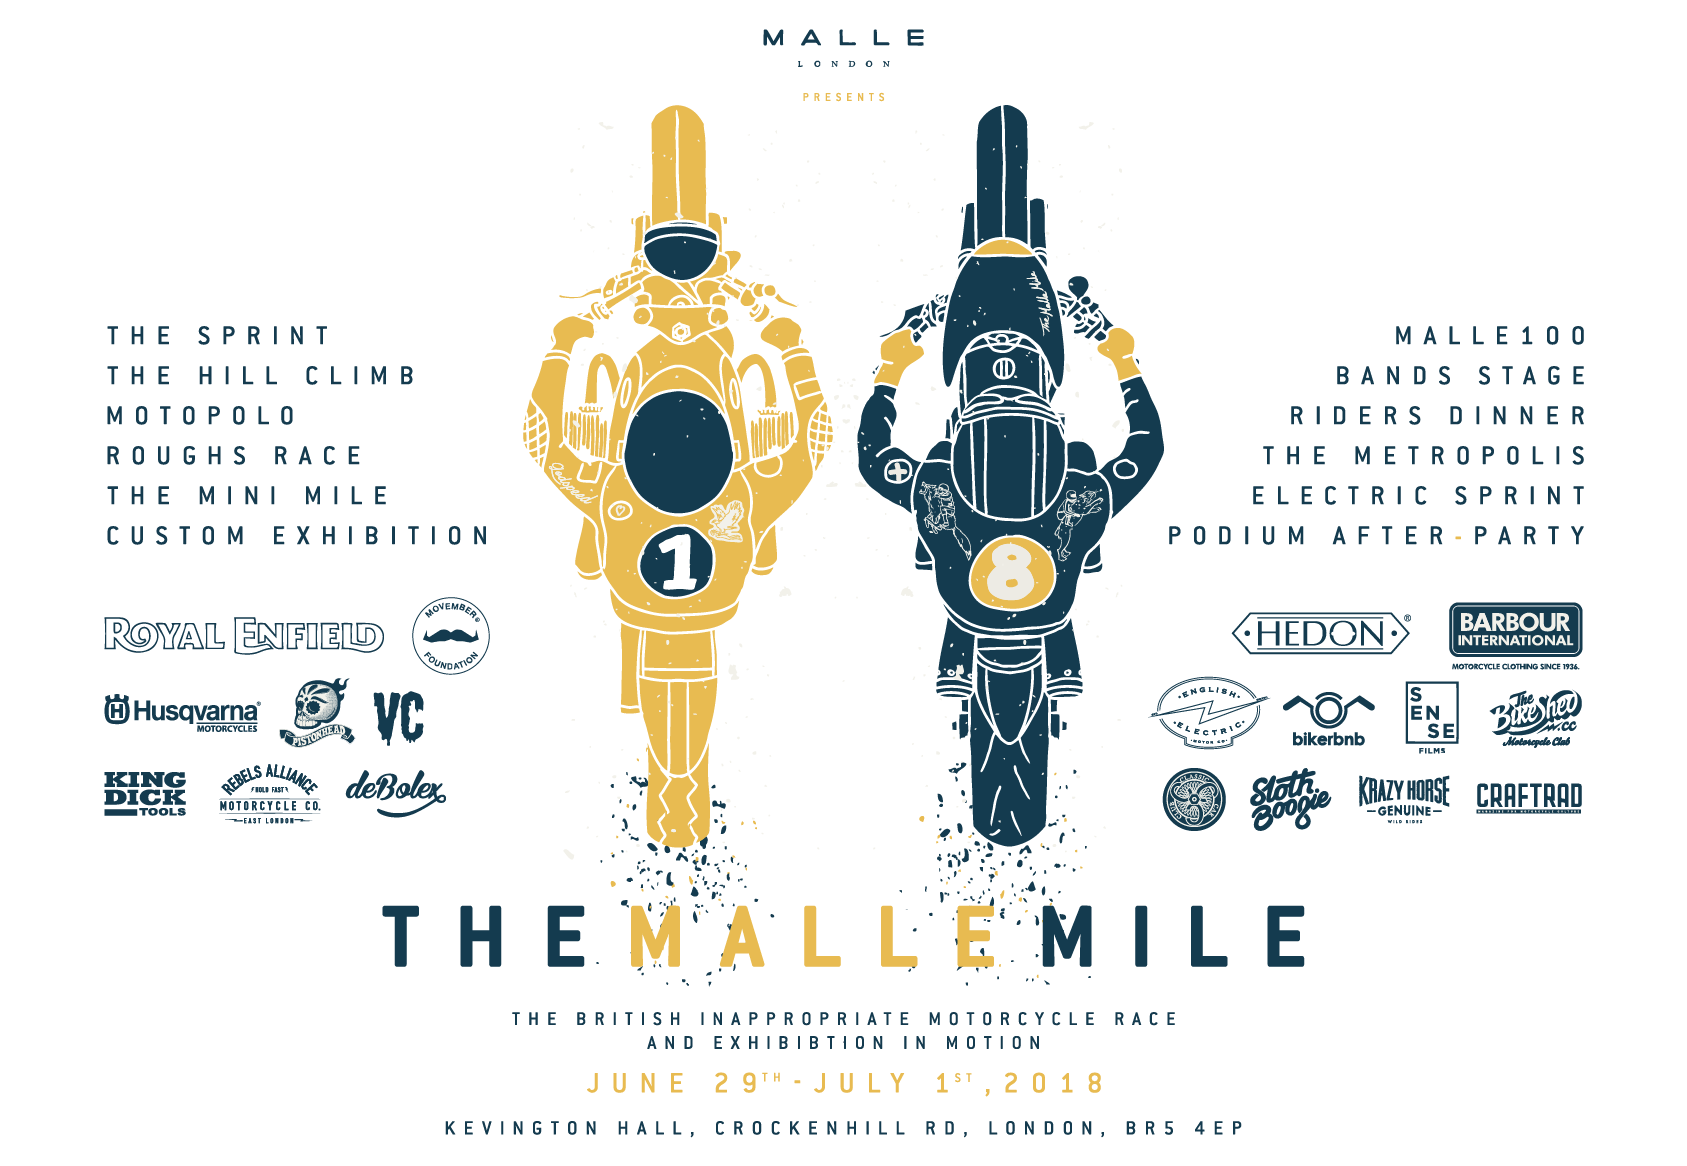 The-Mile-2018-PX-2